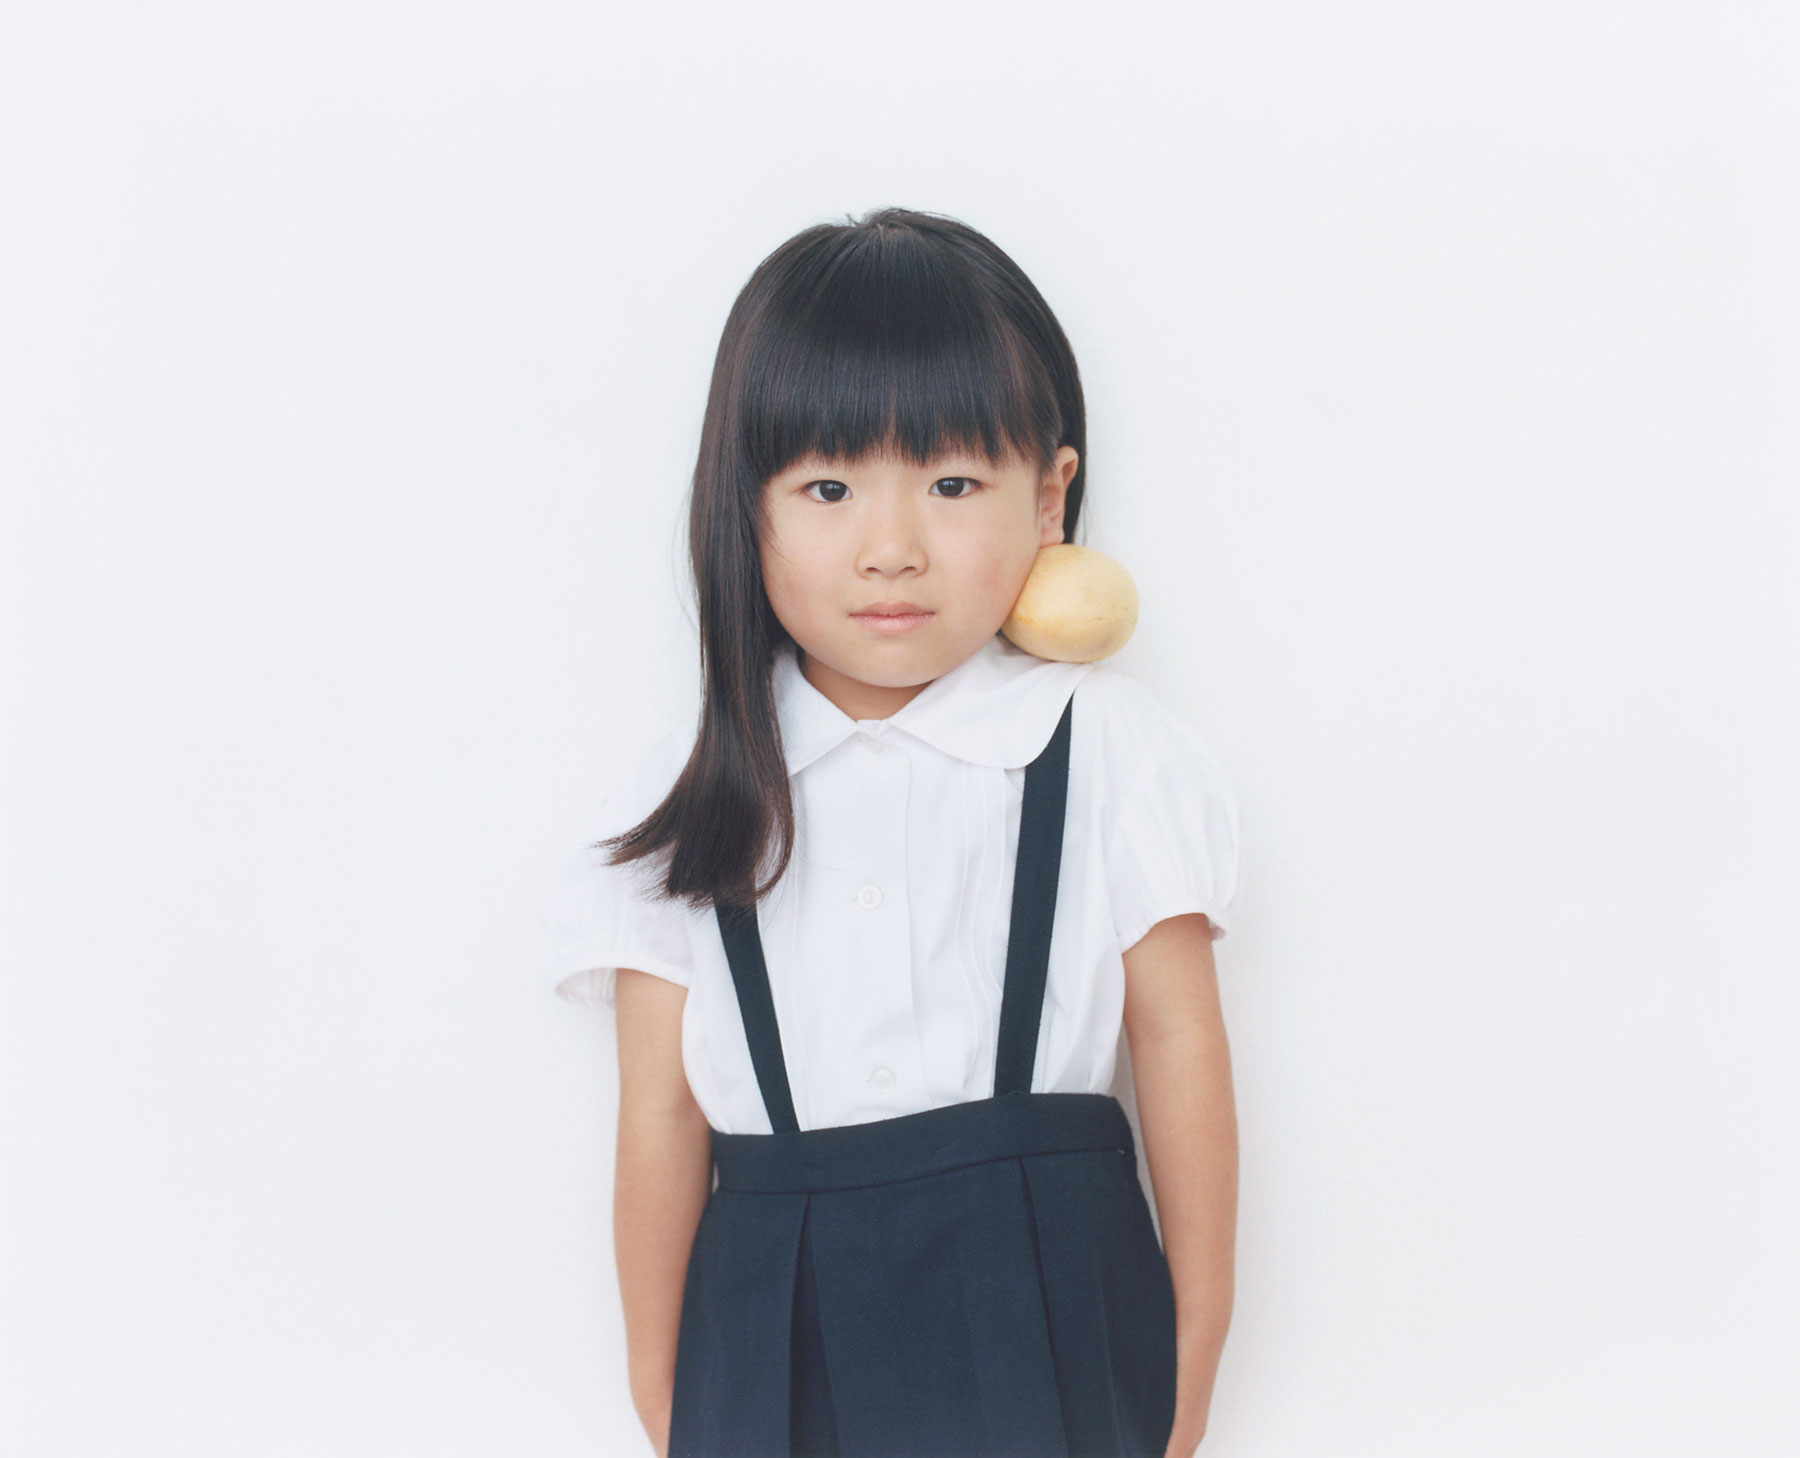 Osamu Yokonami,  1000 Children: Mango No. 2 , 2010-2013  Digital pigment print, 895 x 1105 mm (approx. 35 x 43.5 in), edition of 5; 146 x 168 mm (approx. 5.75 x 6.6 in), edition of 10   Inquire